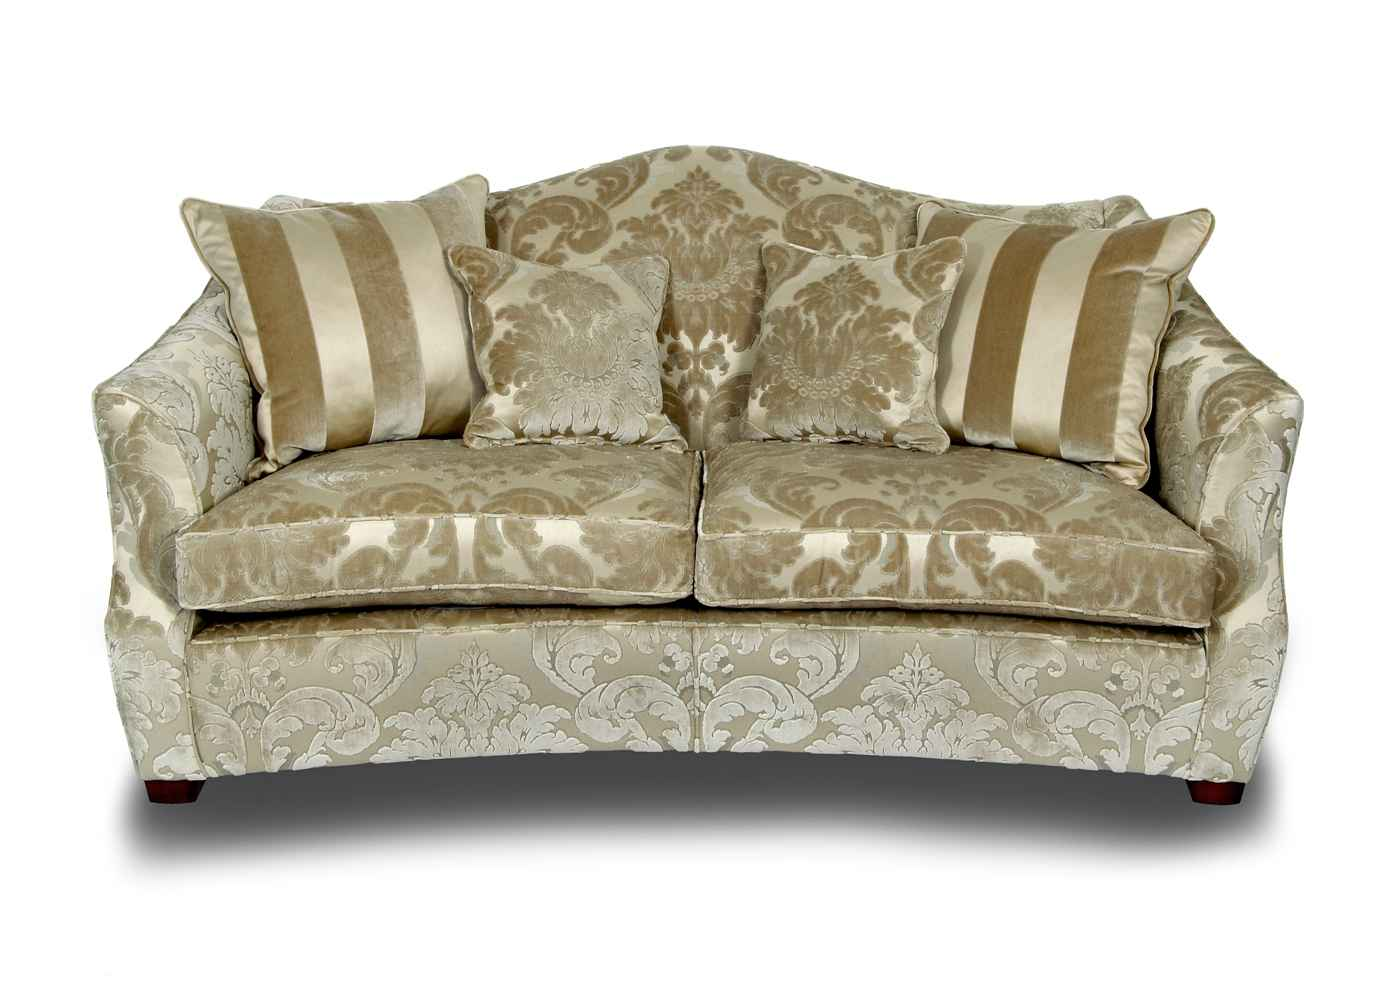 Cheap loveseats for small spaces couch sofa ideas for Best inexpensive sofa